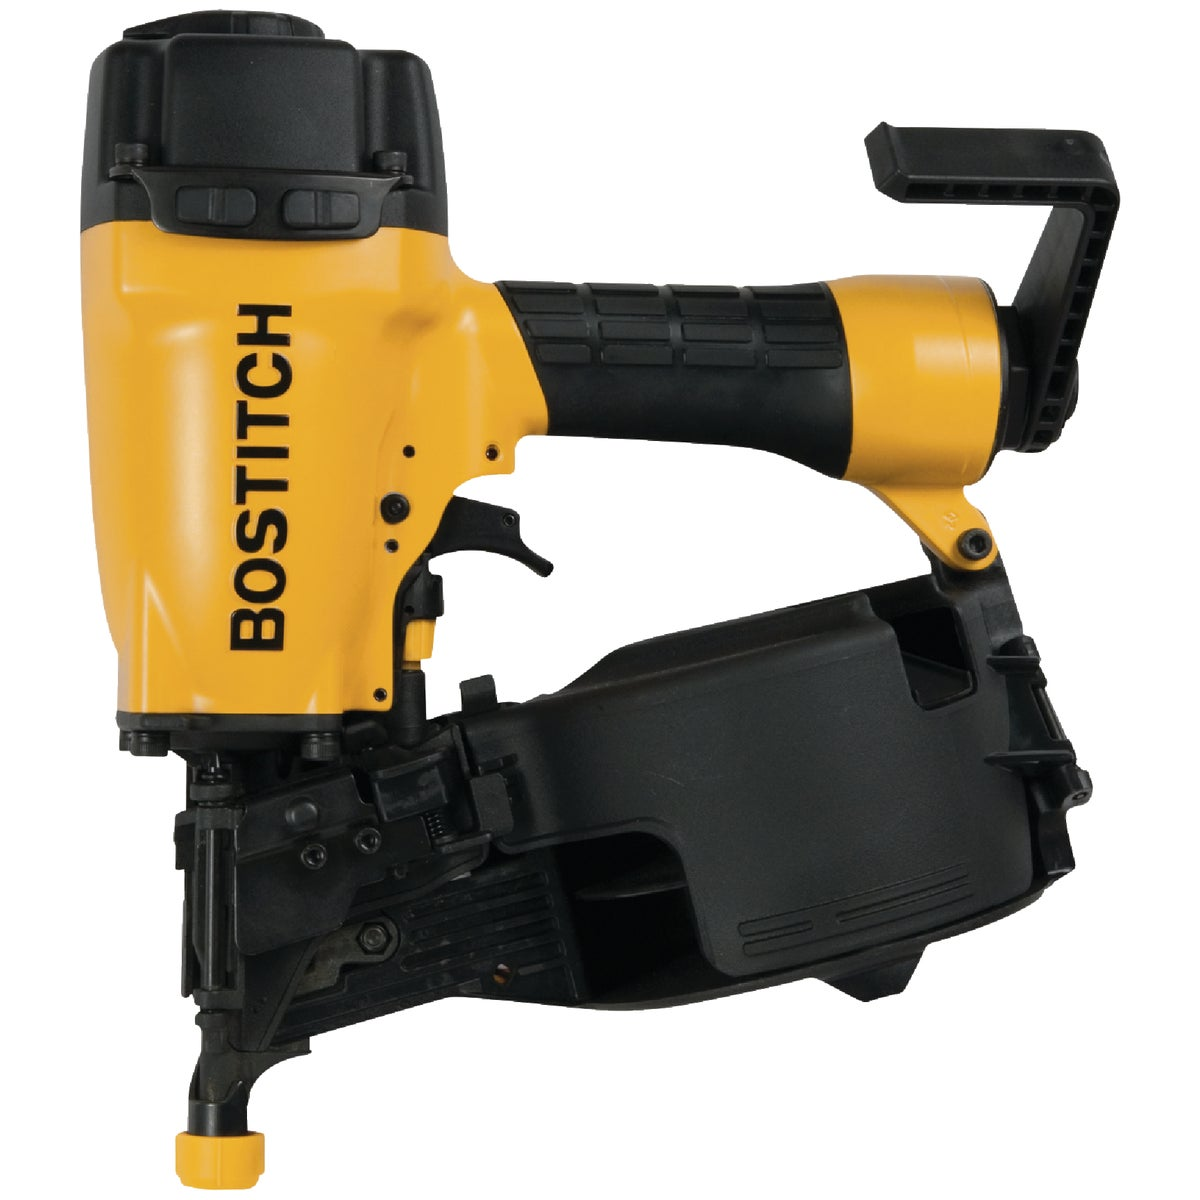 COIL SIDING NAILER - N66C-1 by Stanley Bostitch